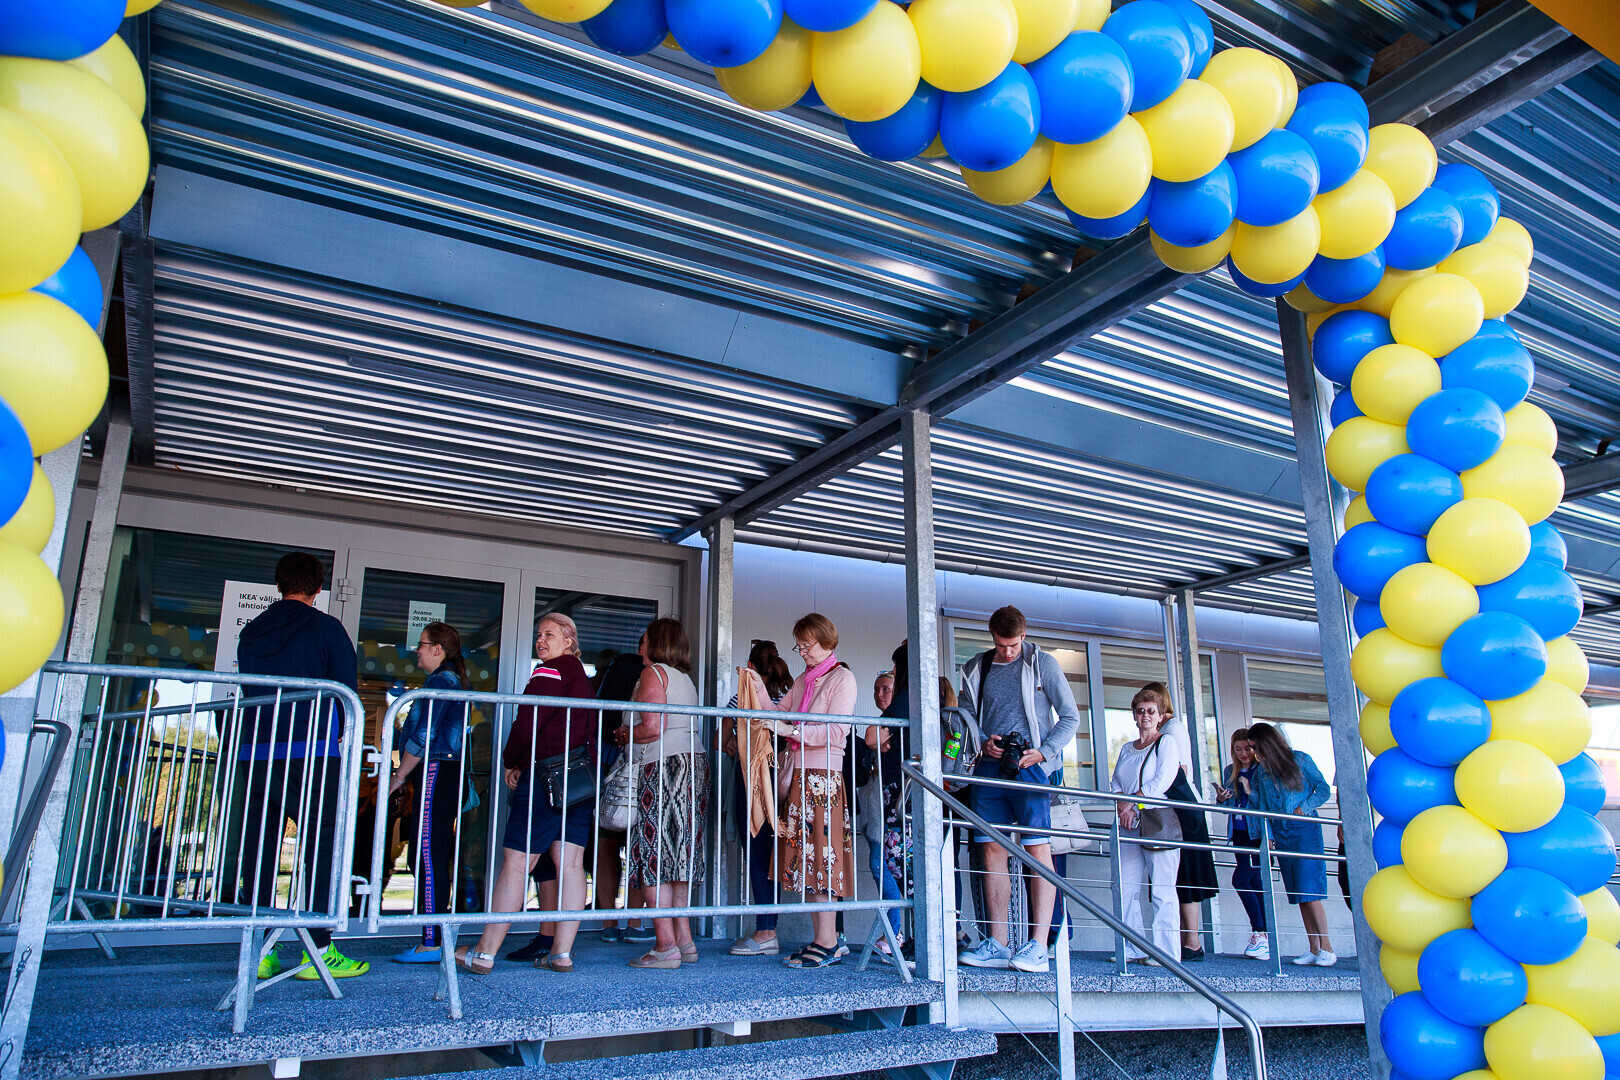 Gallery: IKEA Estonia launches online store, opens limited ...